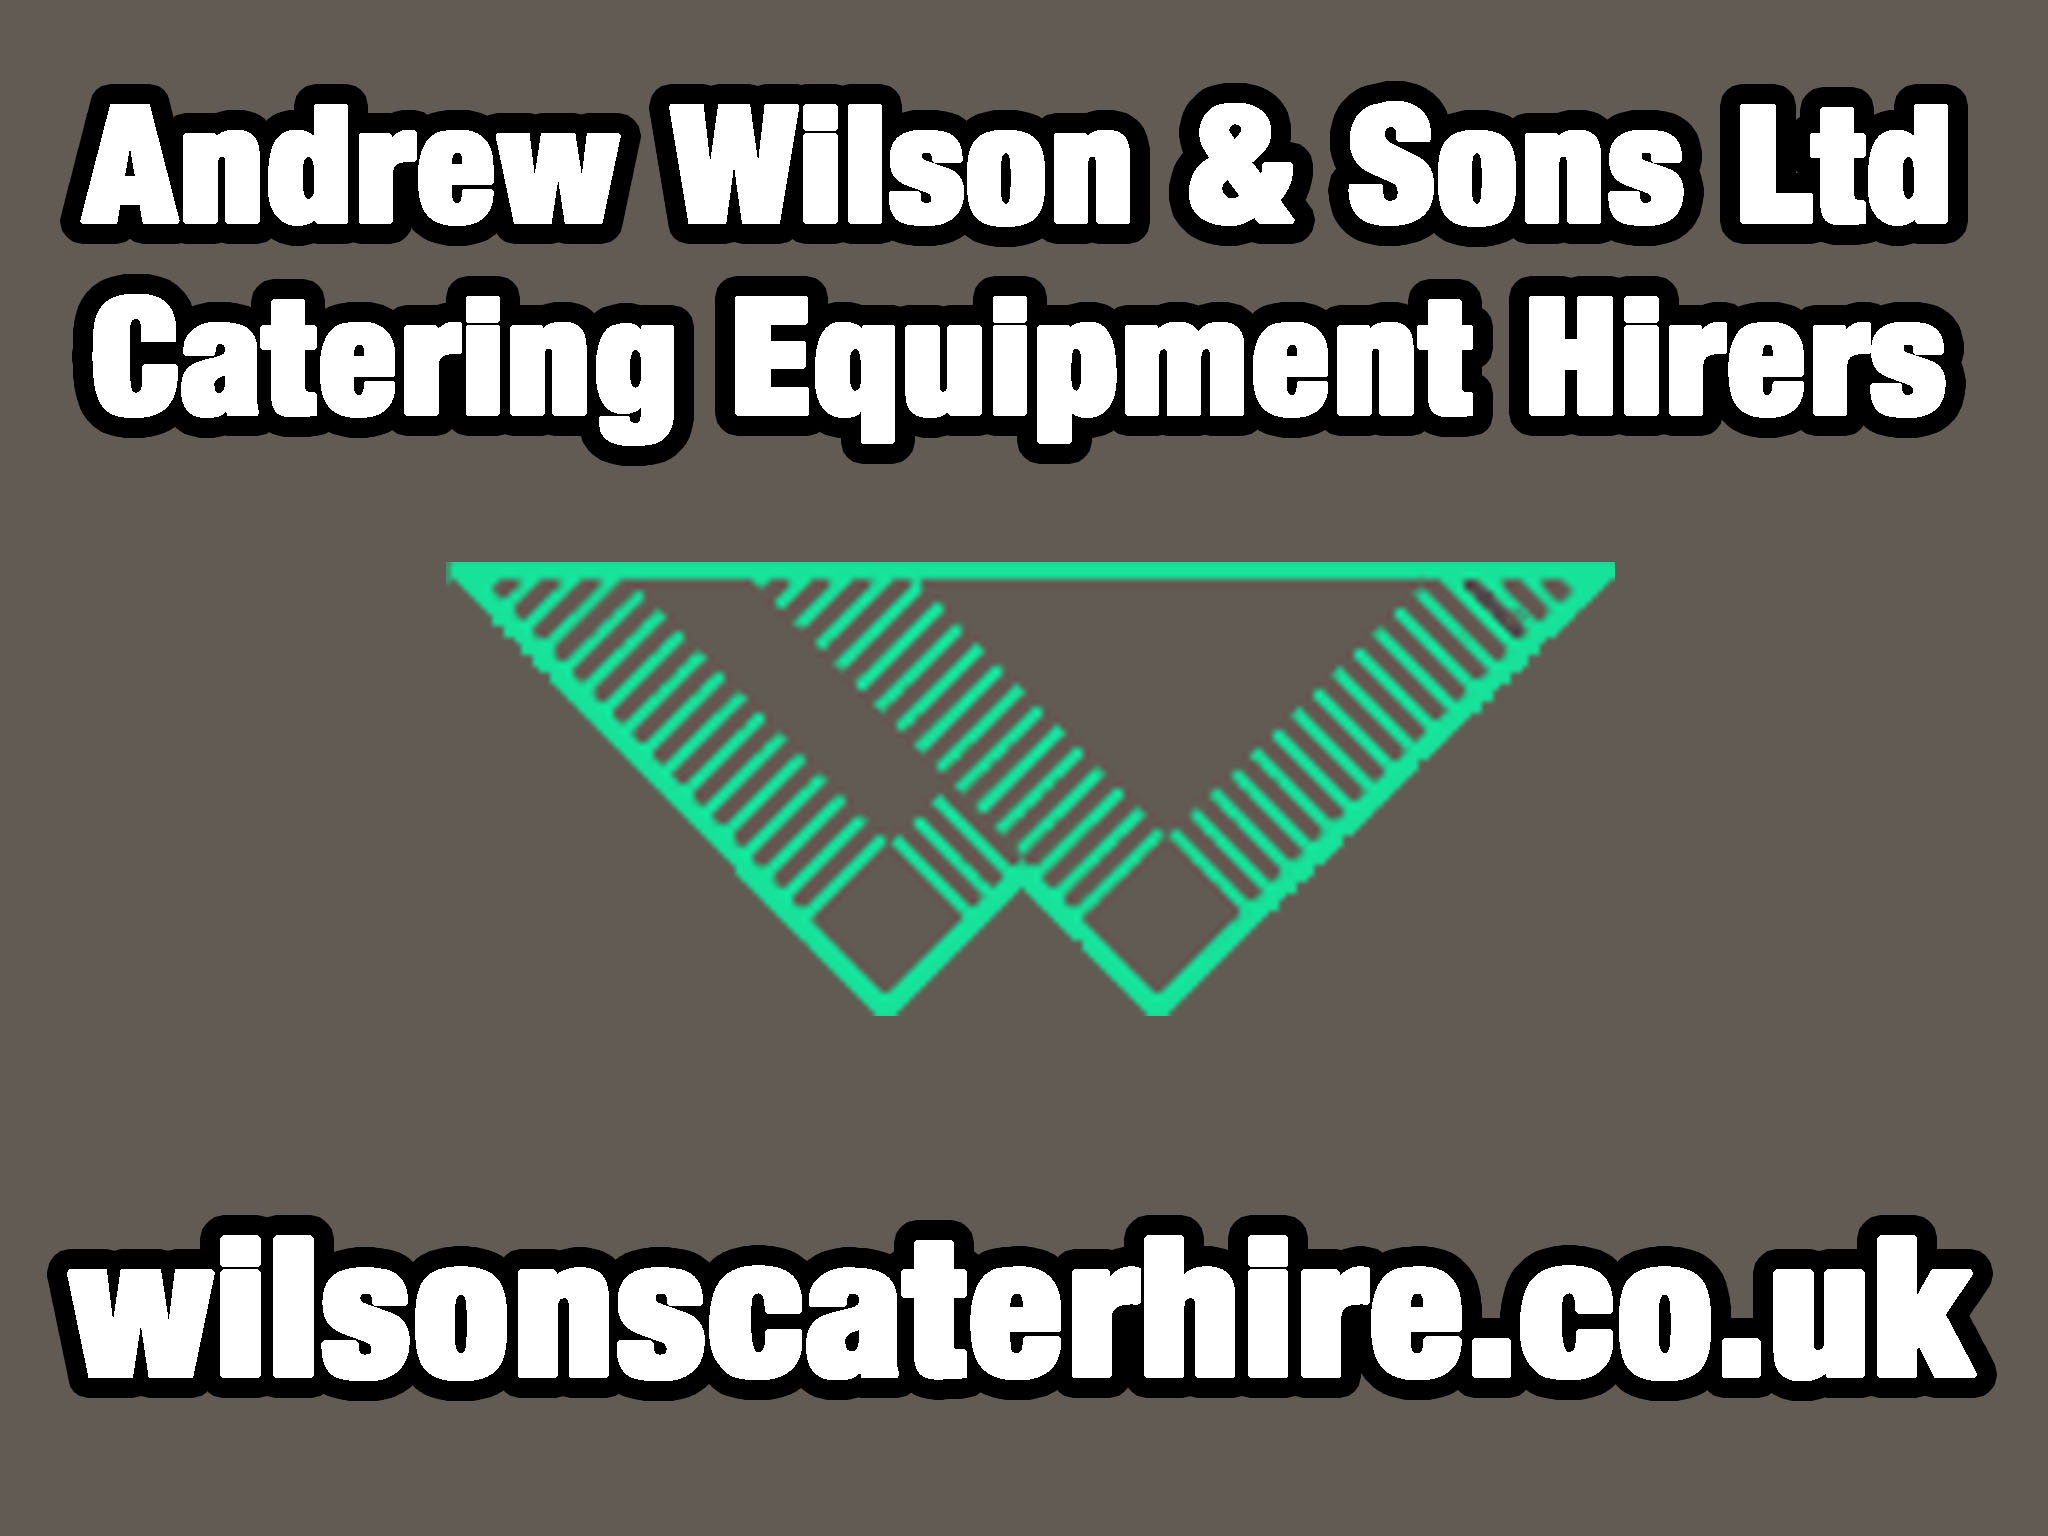 Andrew Wilson Catering Equipment Hires